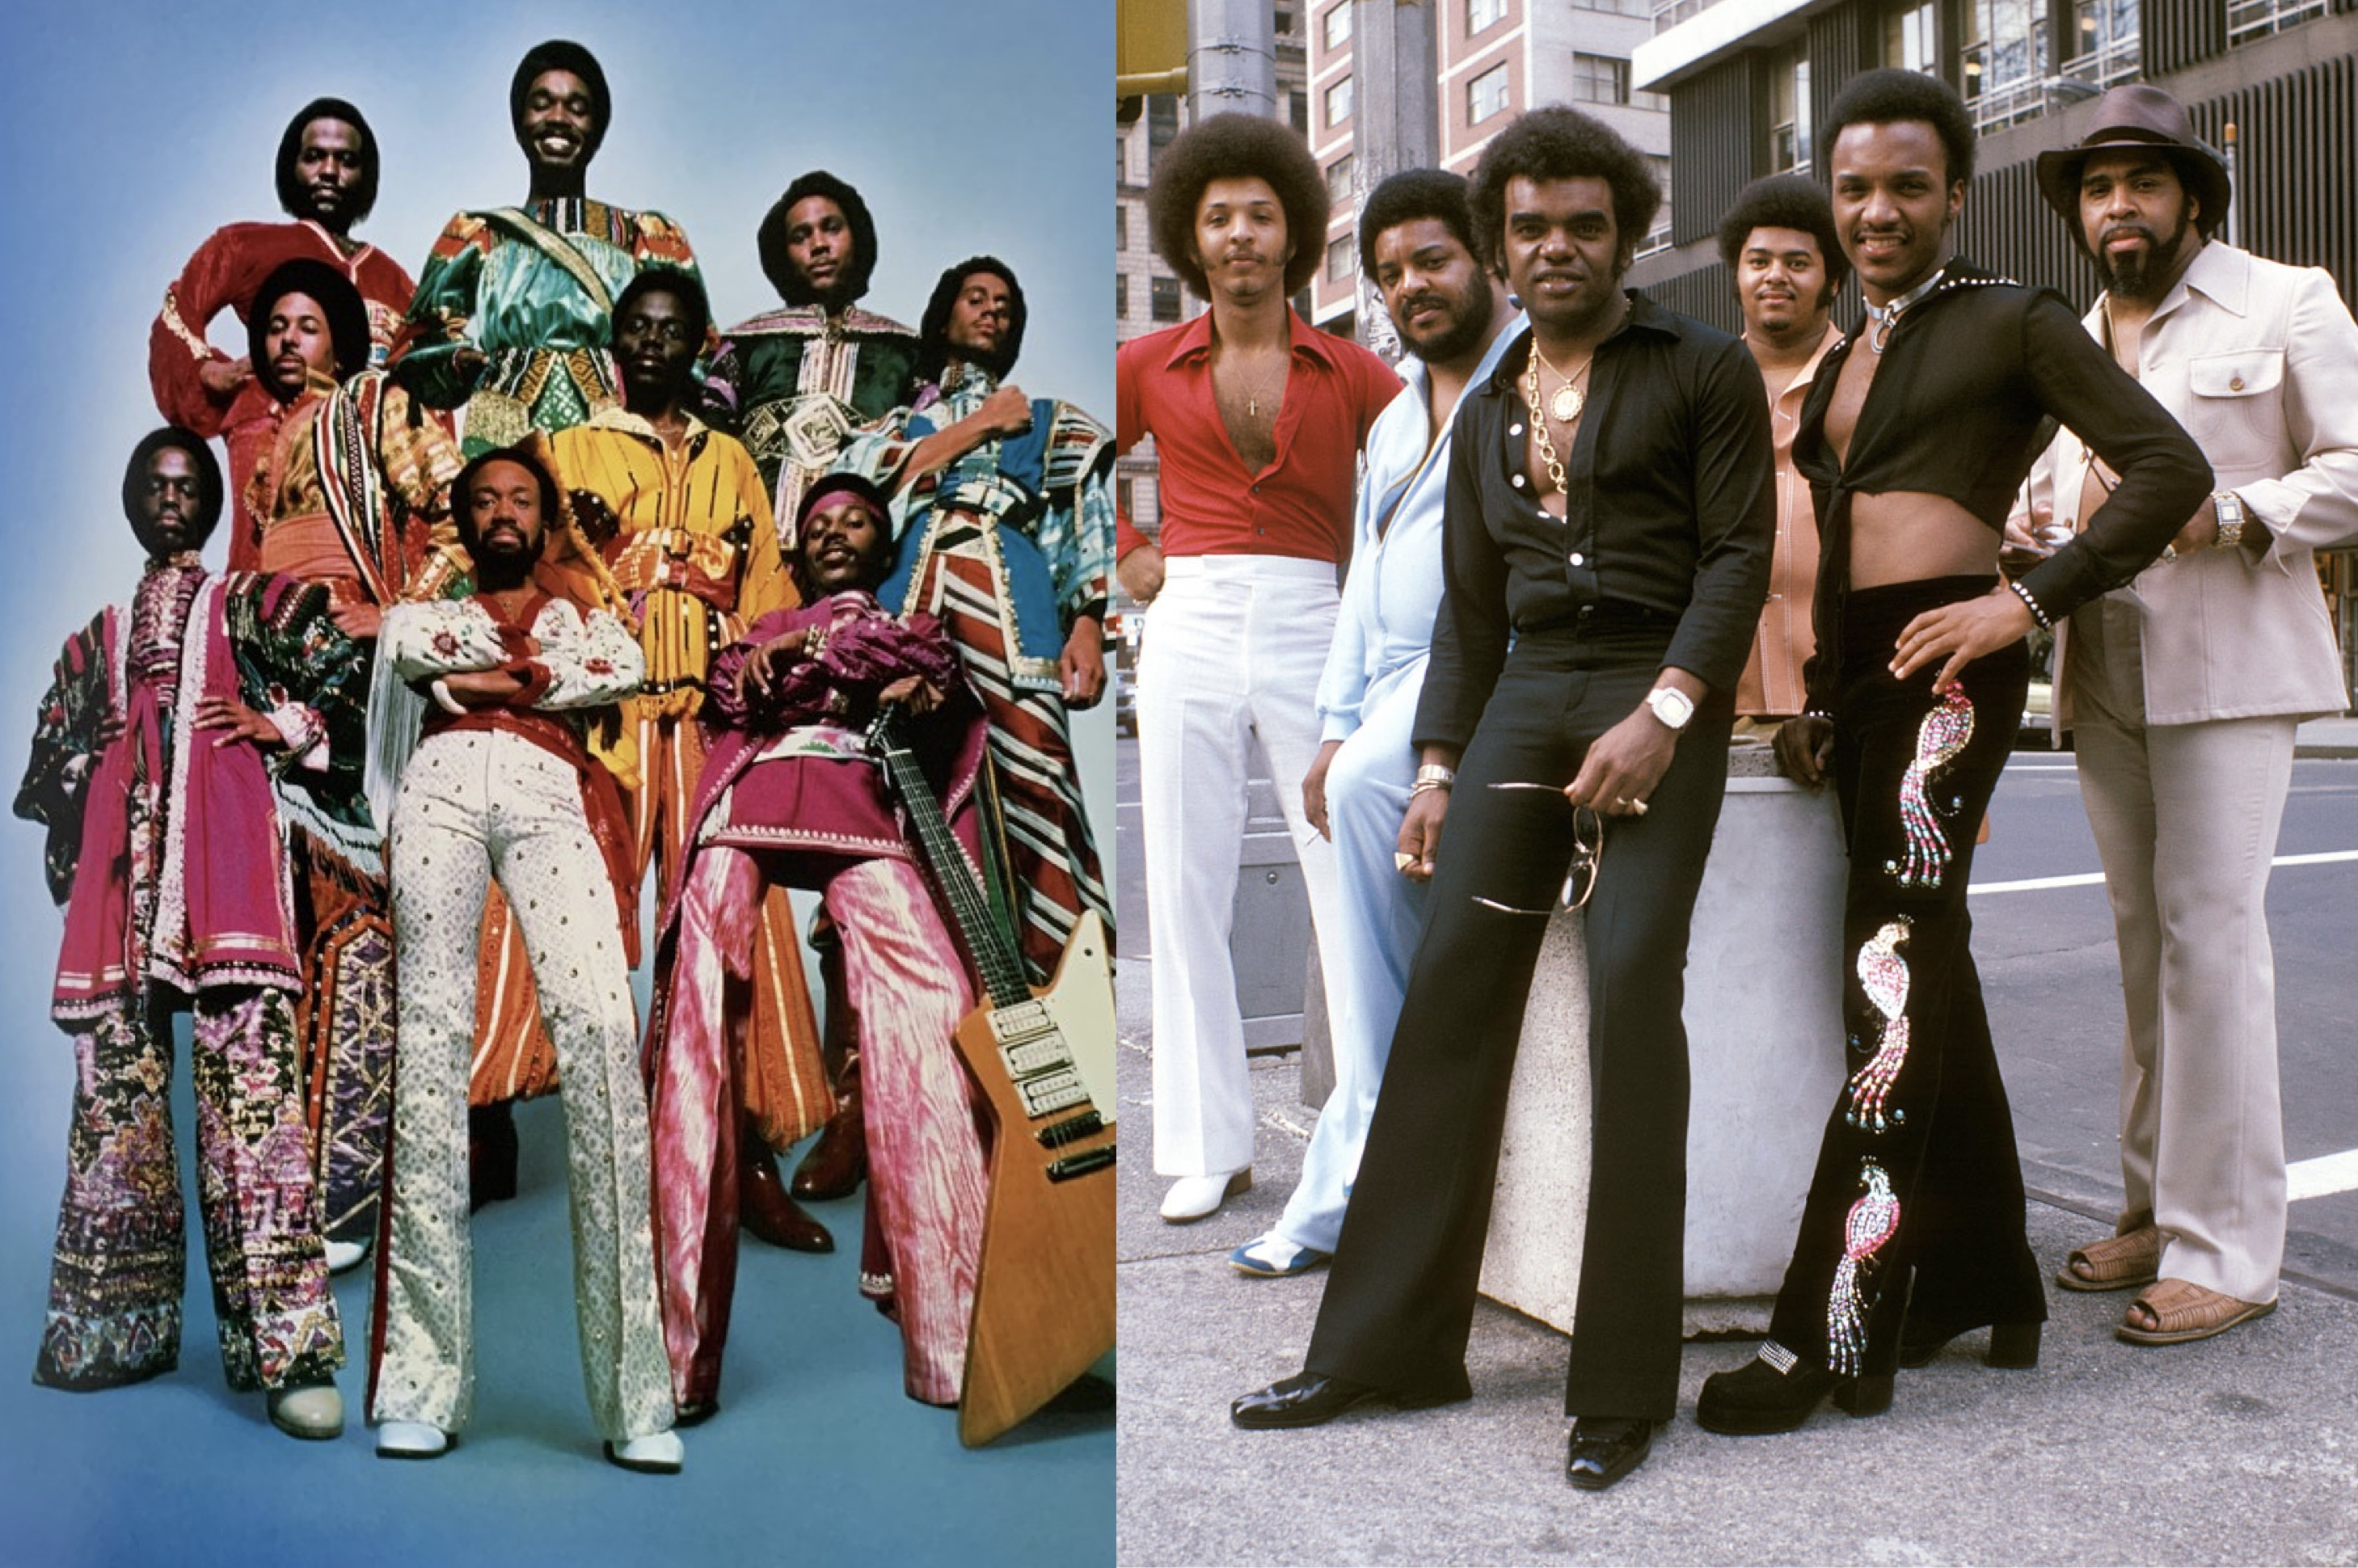 Earth, Wind & Fire and The Isley Brothers